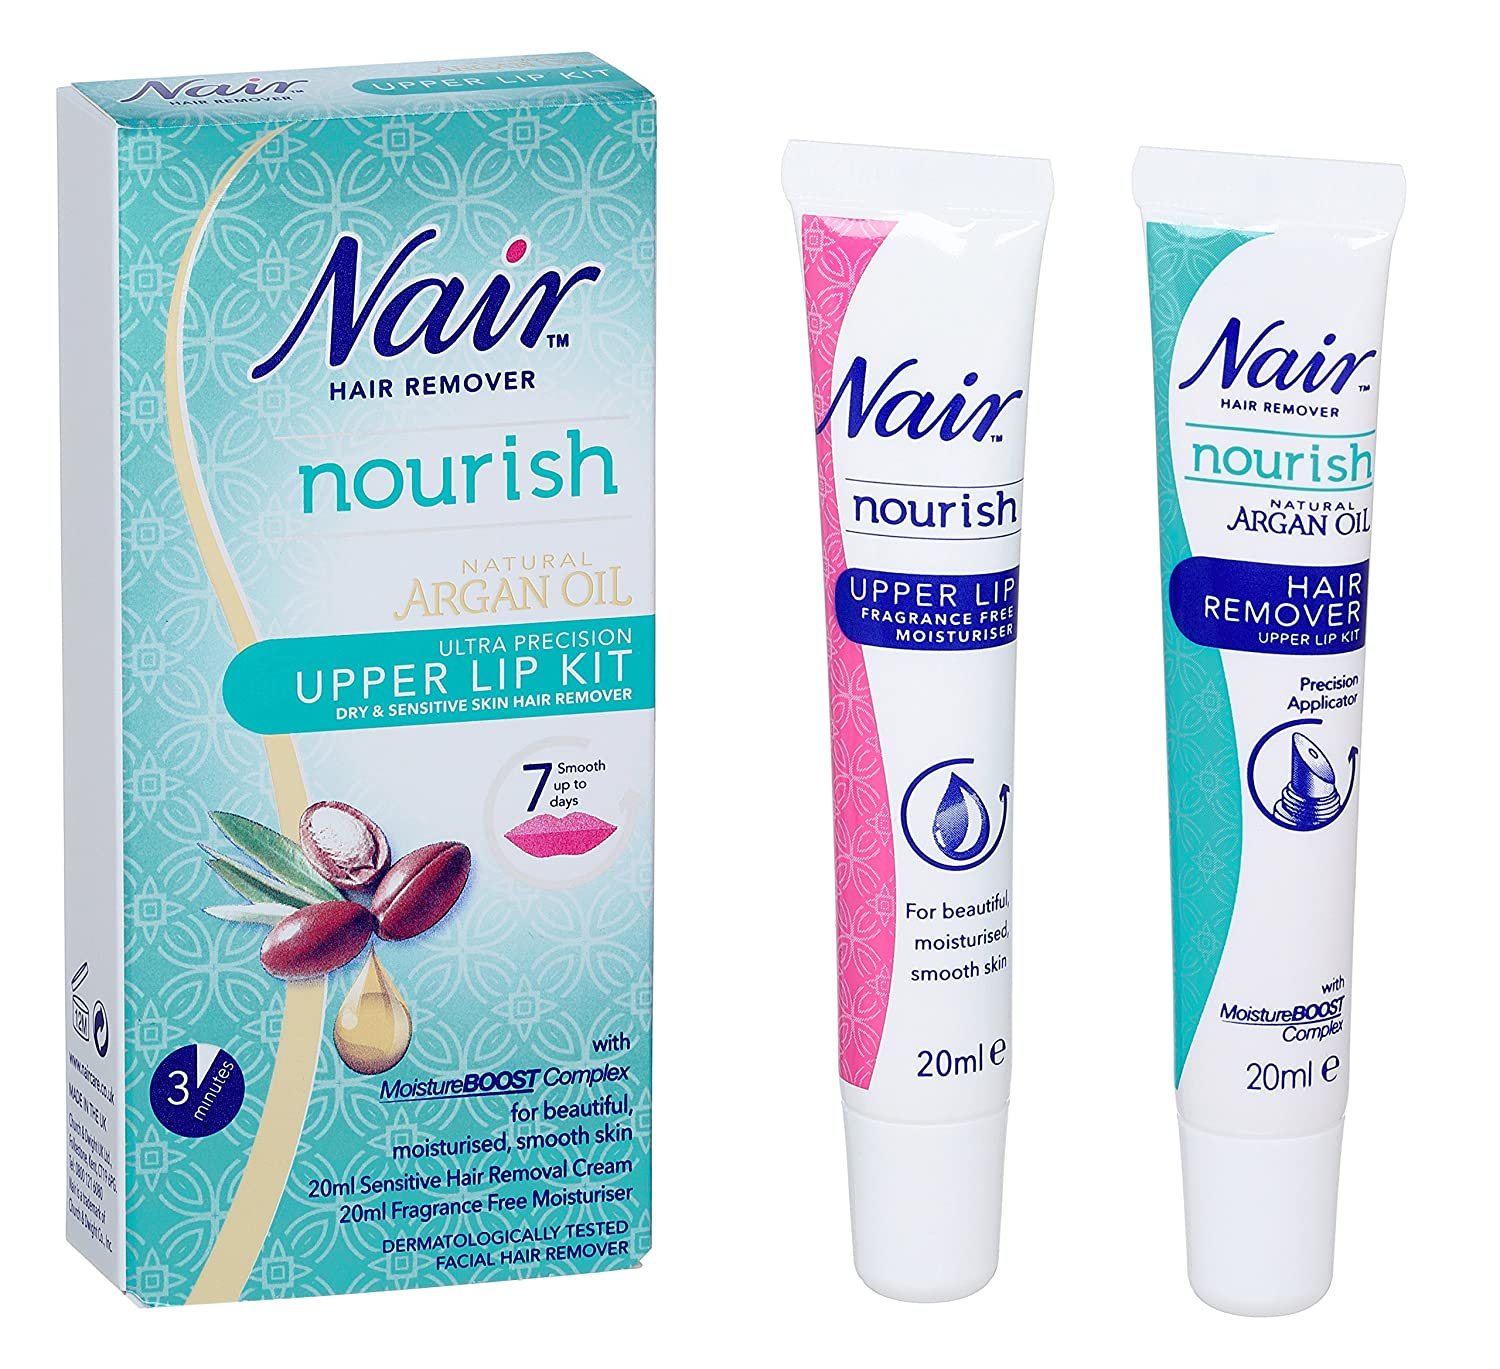 Nair - Natural Argan Oil - Upper Lip Kit - 20ml 503038